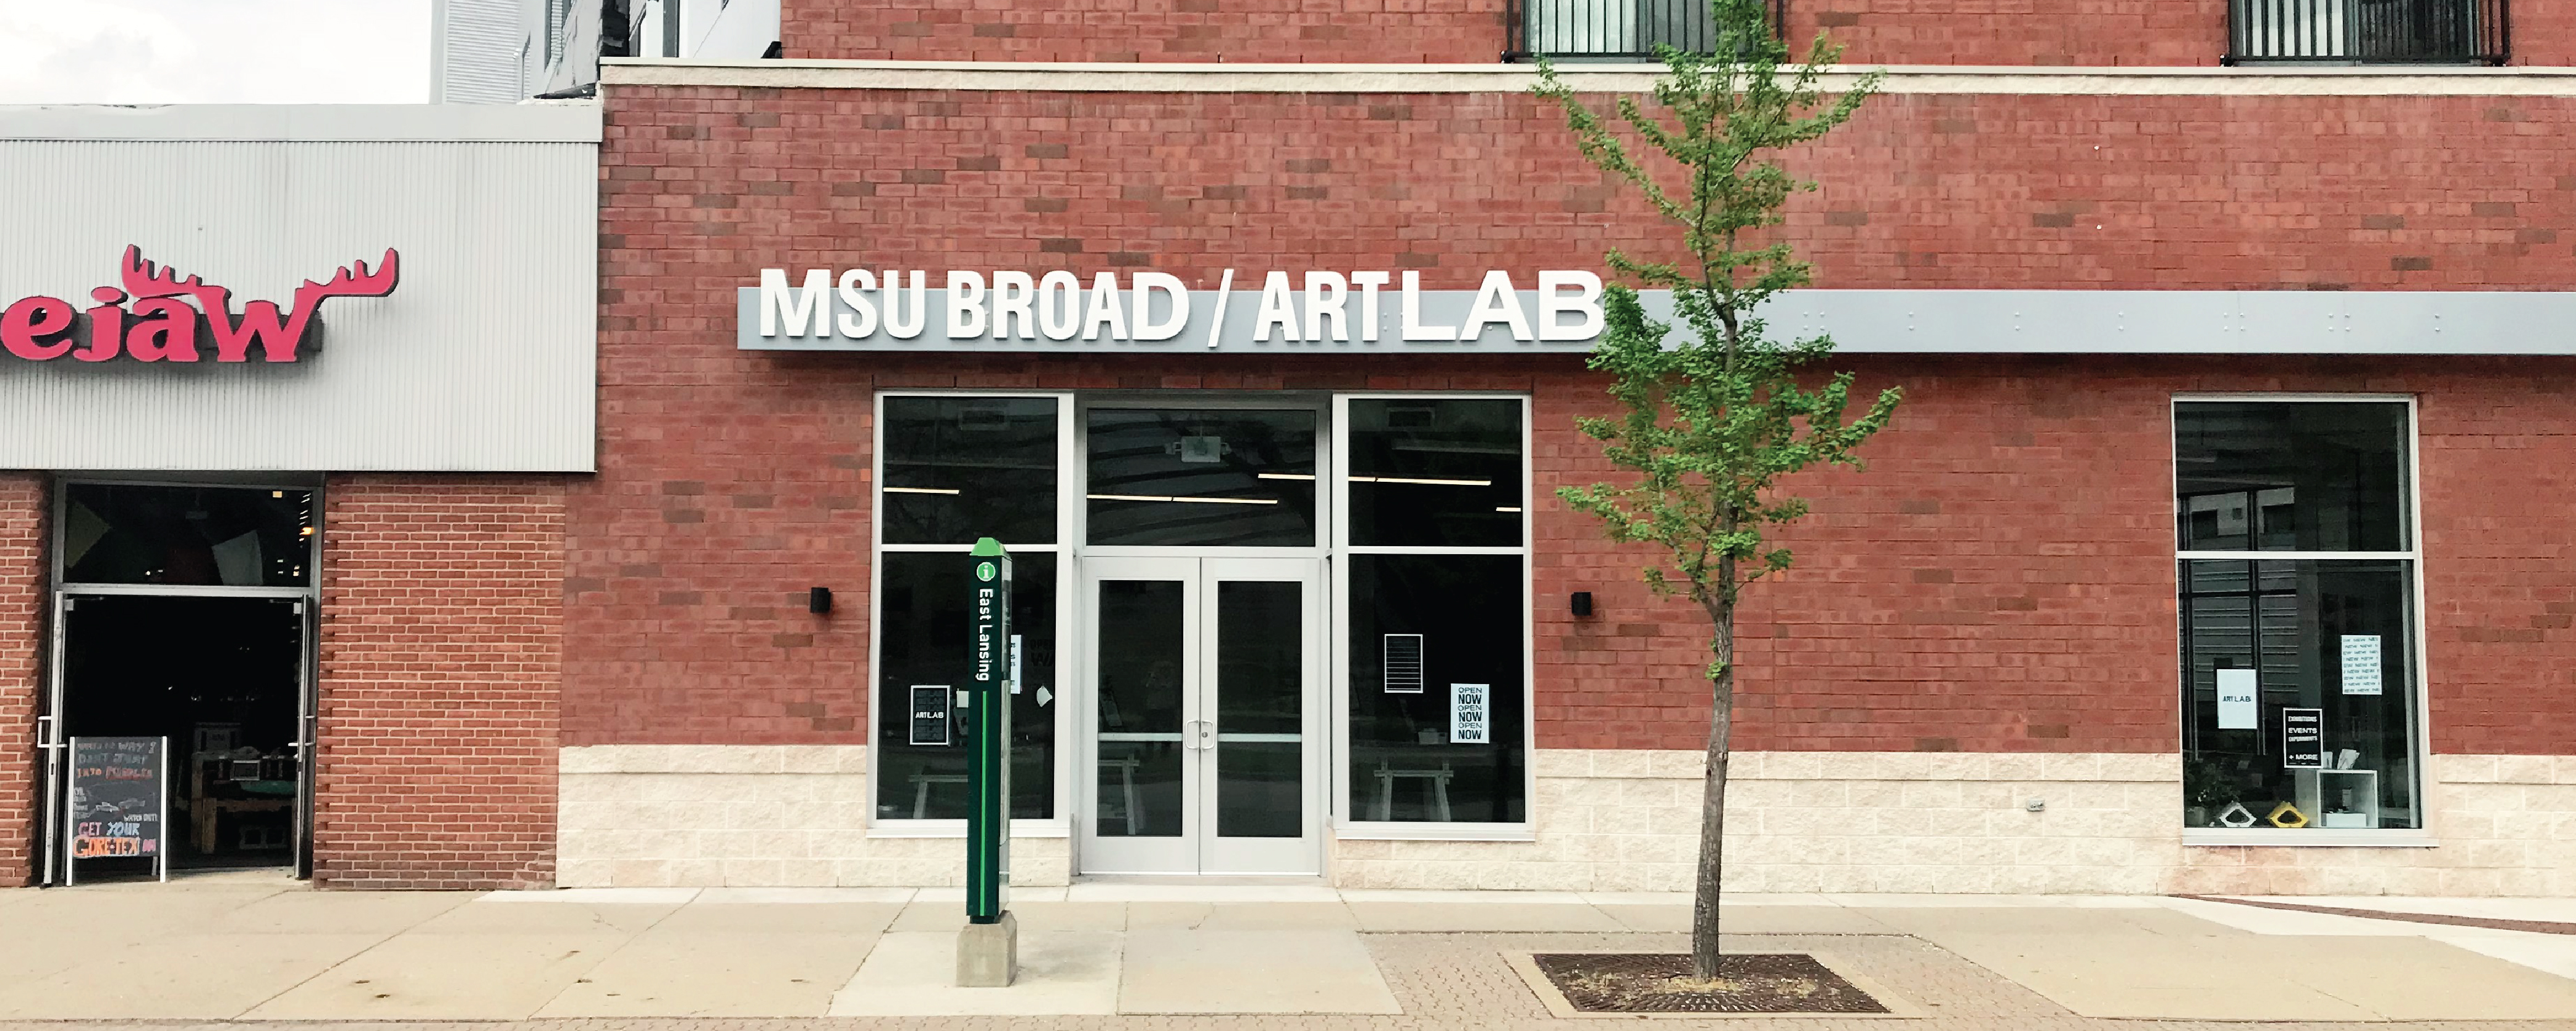 Street level view of the MSU Broad Art Lab entrance doors